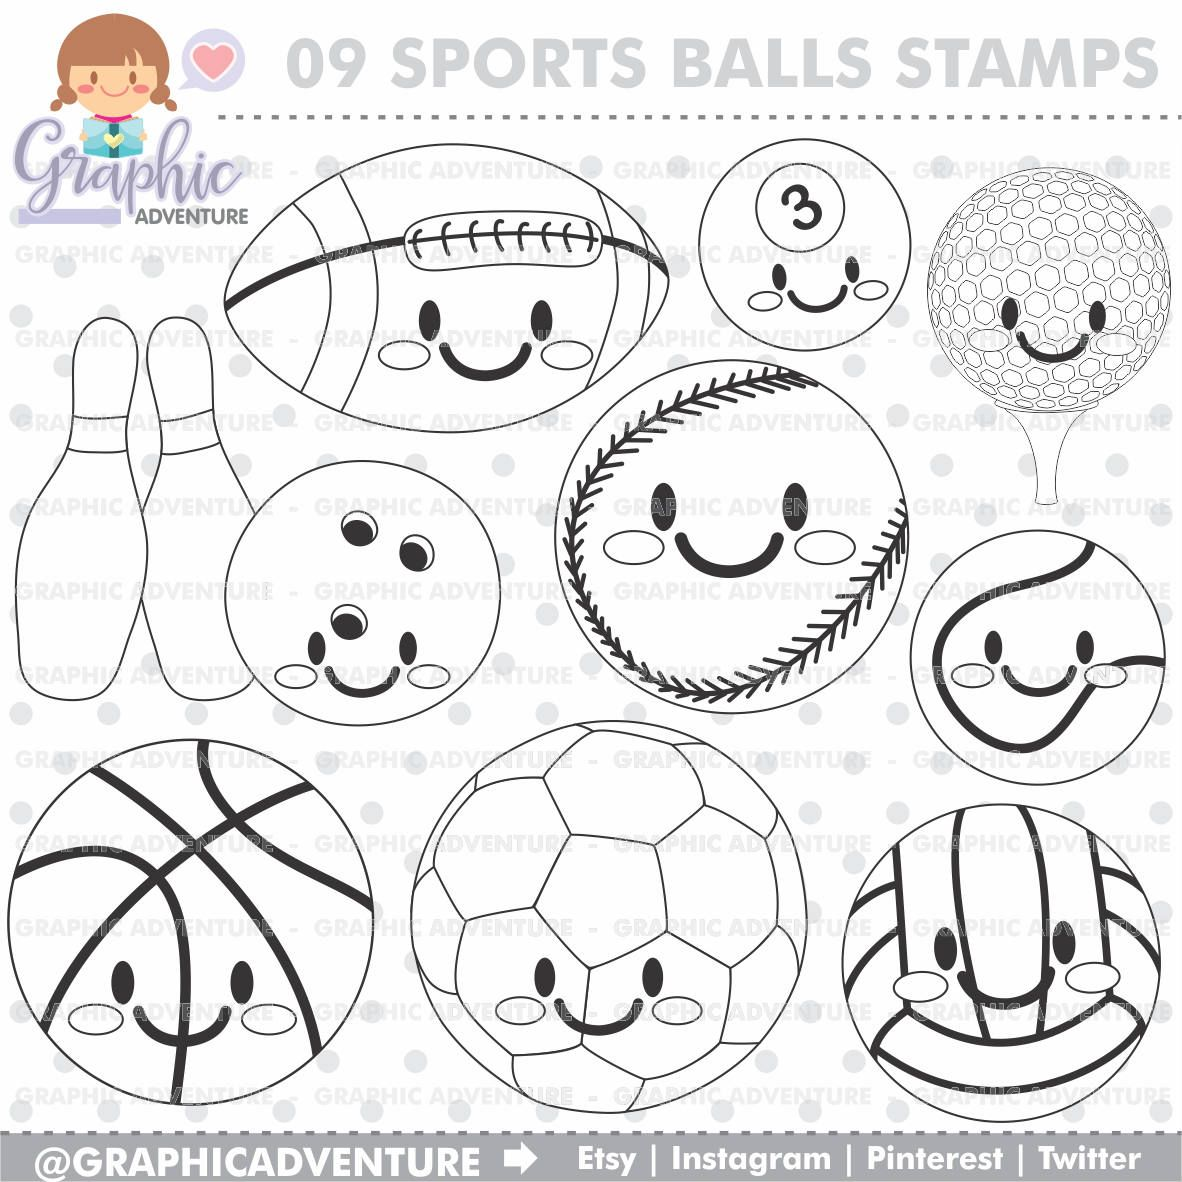 Sport Stamp Commercial Use Digi Stamp Digital Image Party